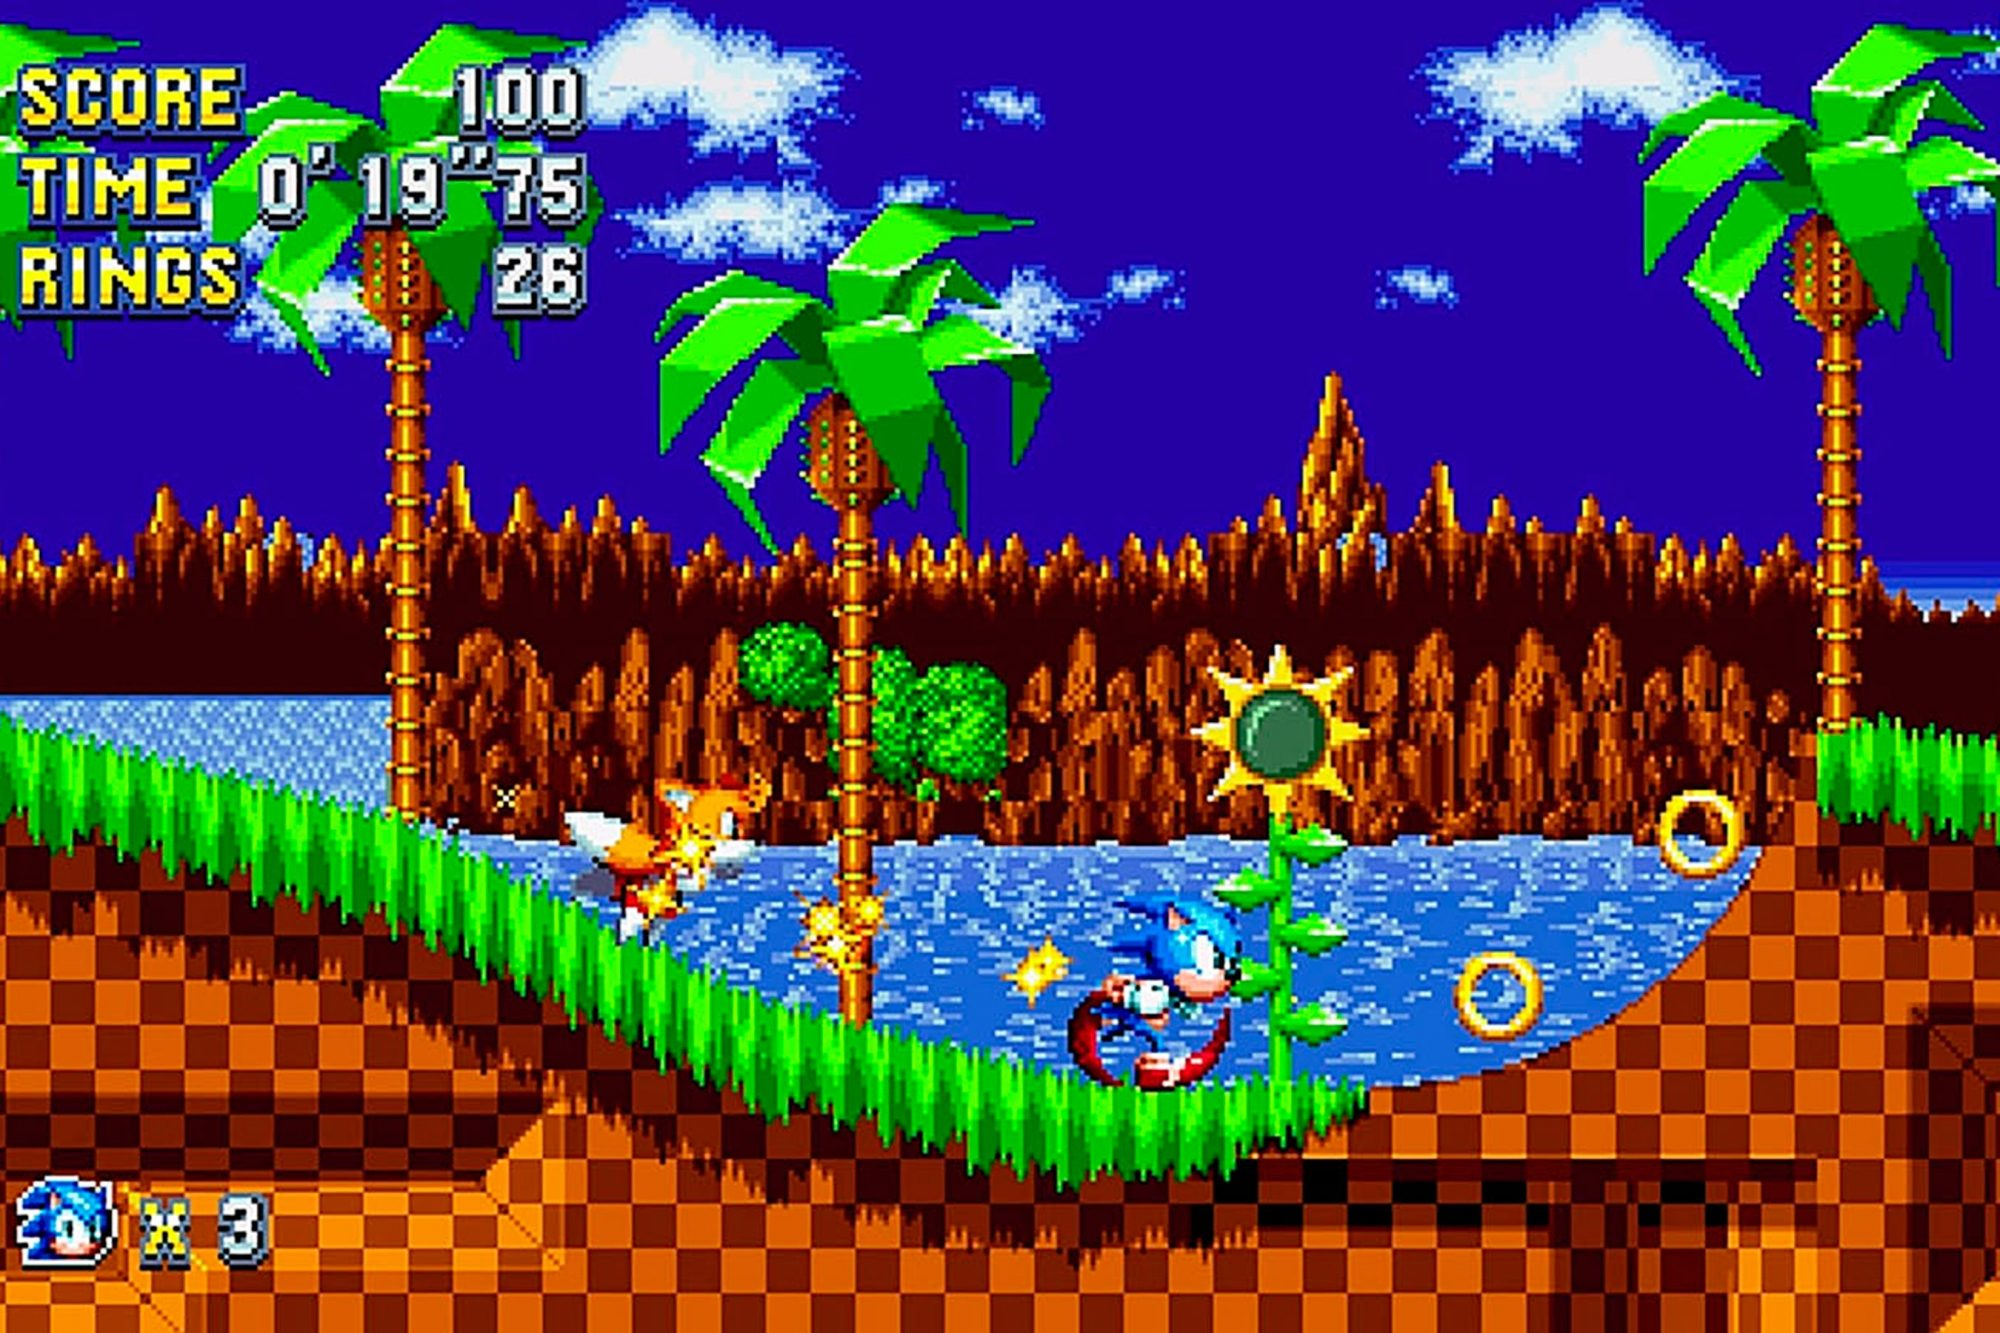 Sonic_Mania_GHZ_Act_1_Sonic.JPG